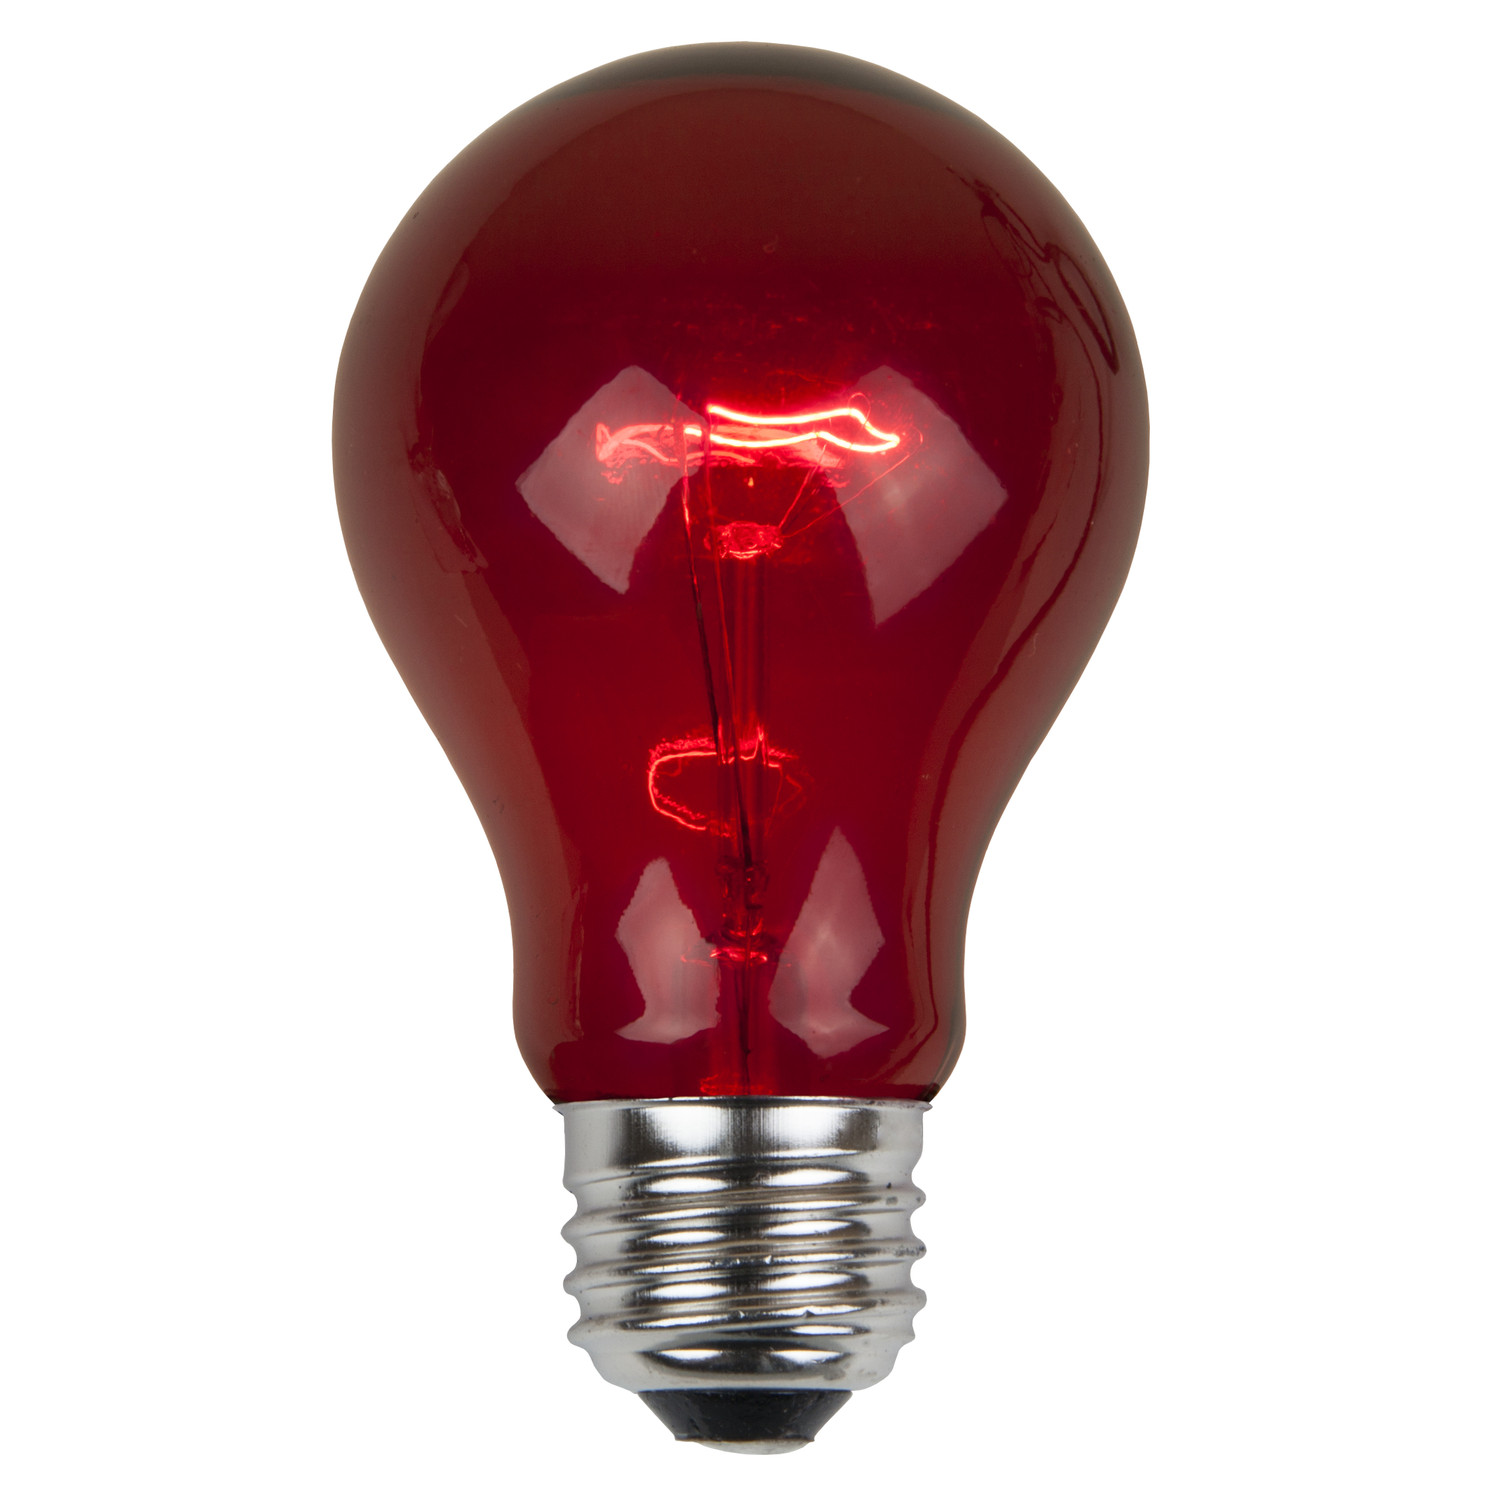 A19-E26-socket-Transparent-Incandescent-red-party-sign-lamp-light-bulb-IMG_9950